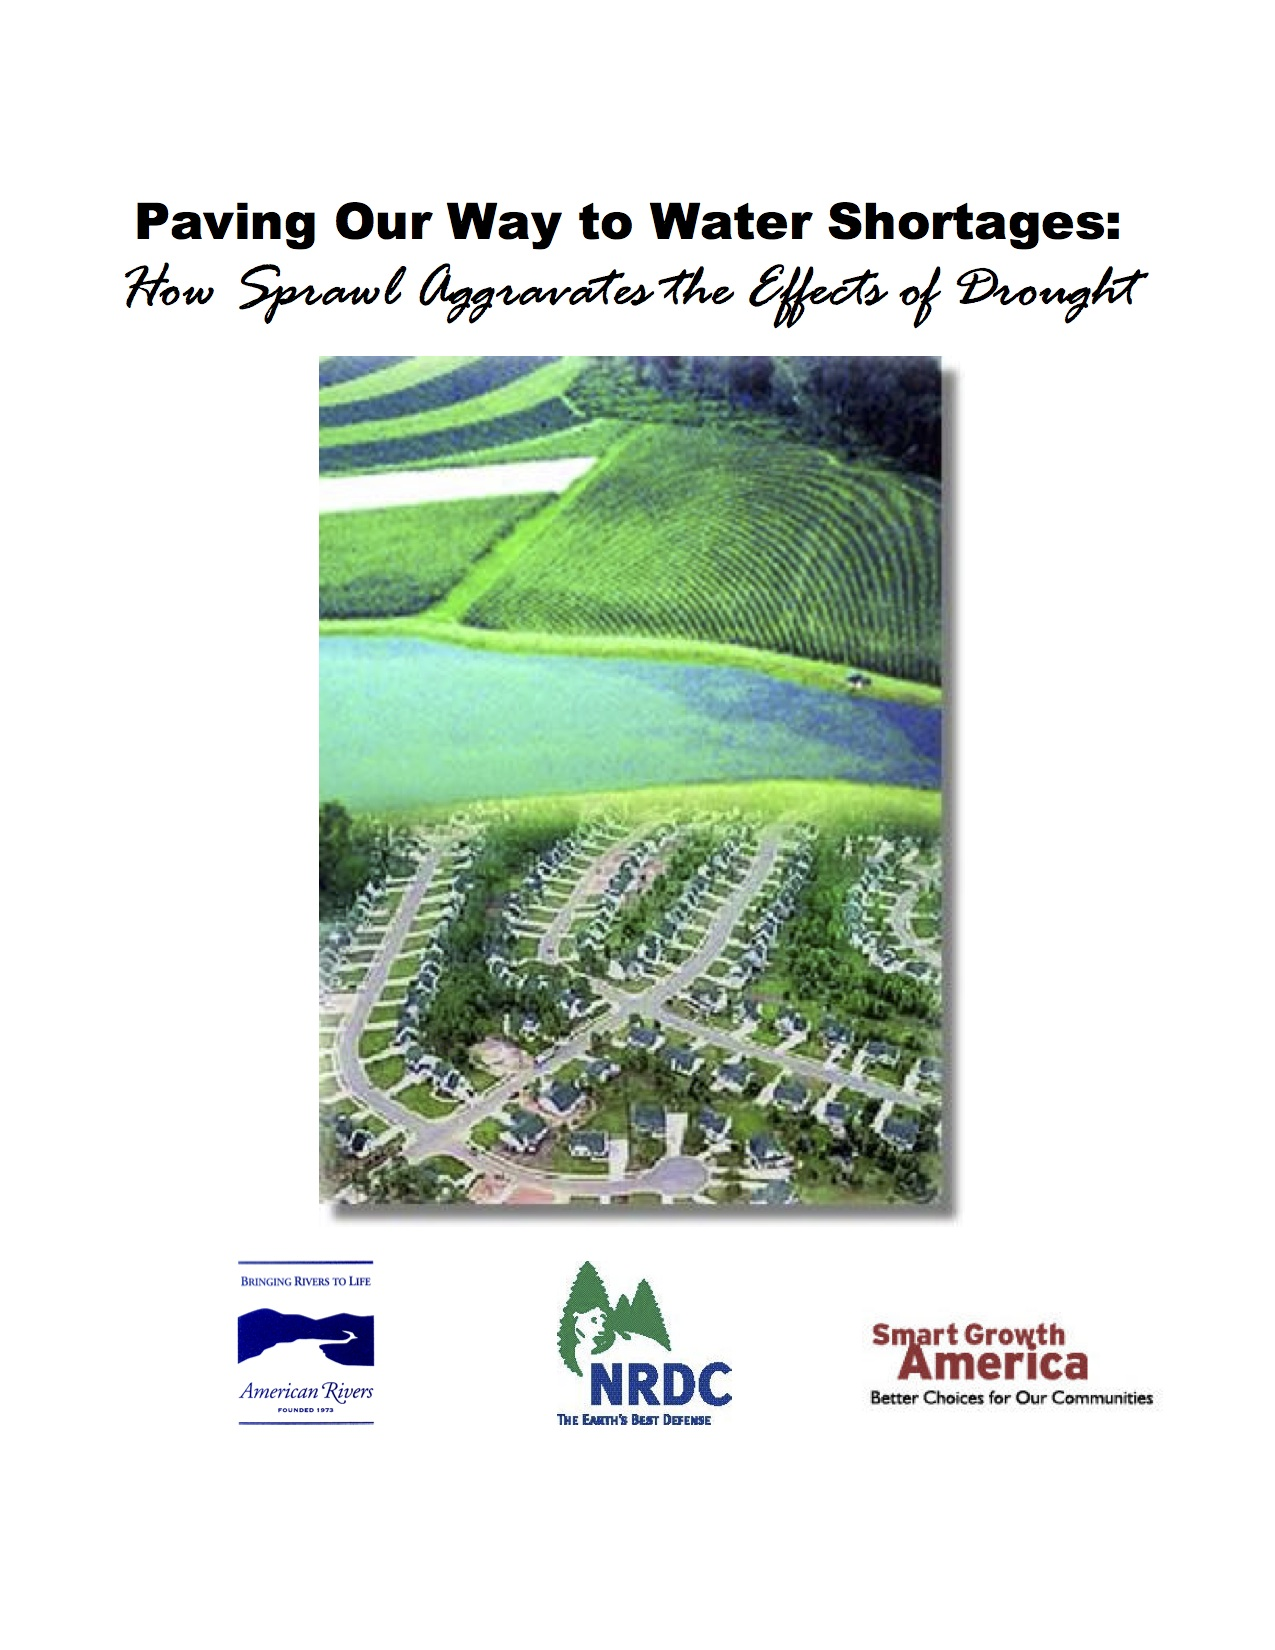 Paving Our Way to Water Shortages: How Sprawl Aggravates the Effects of Drought